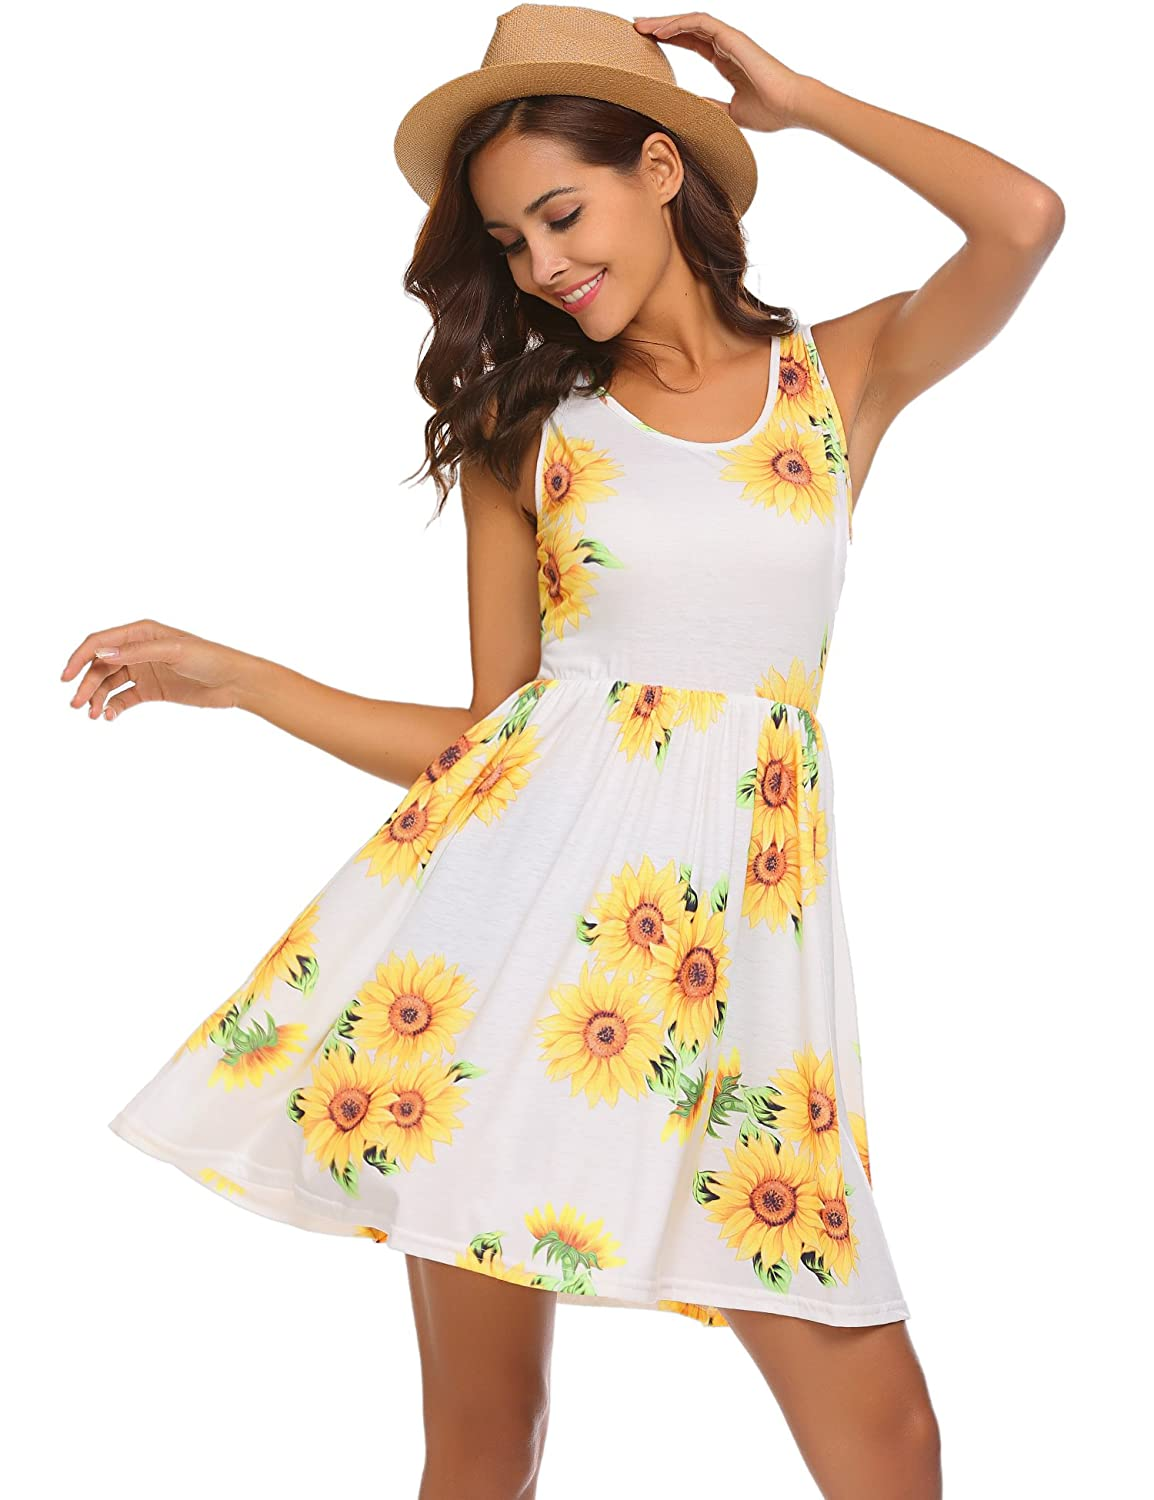 Yellow POGTMM Women's Casual Summer Sleeveless Sundress Floral Printed Dresses Tank Mini Dress